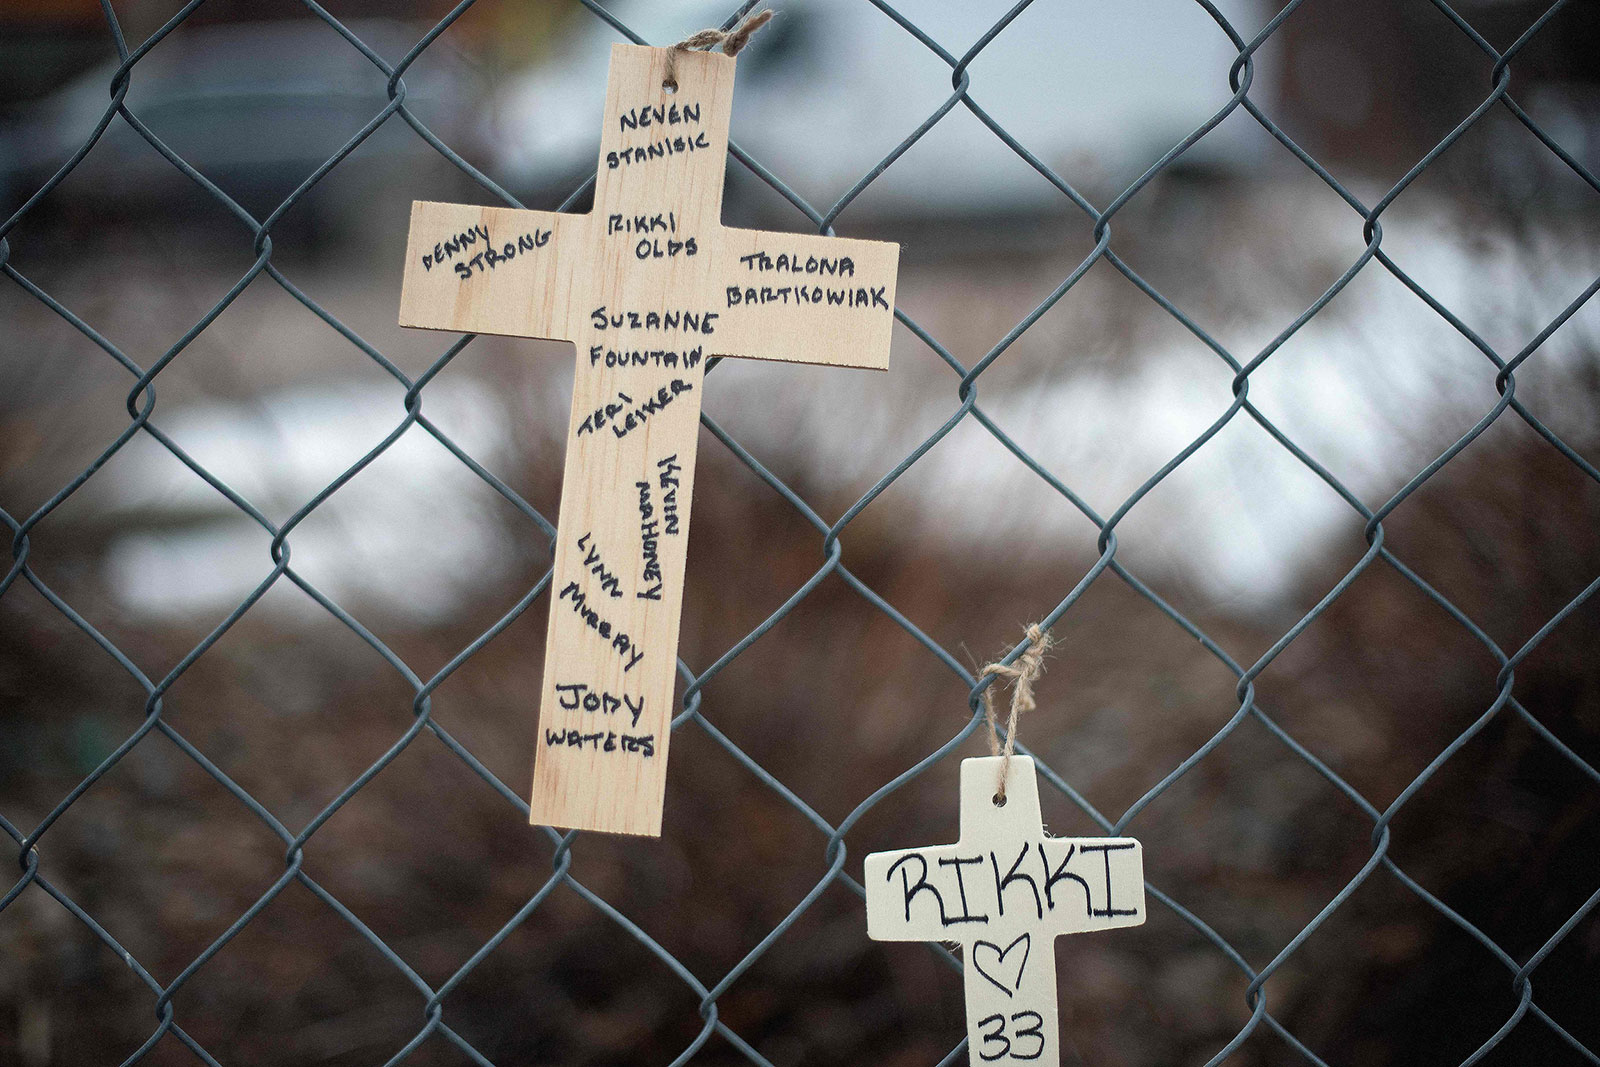 Crosses bearing the names of the shooting victims hang from a fence.